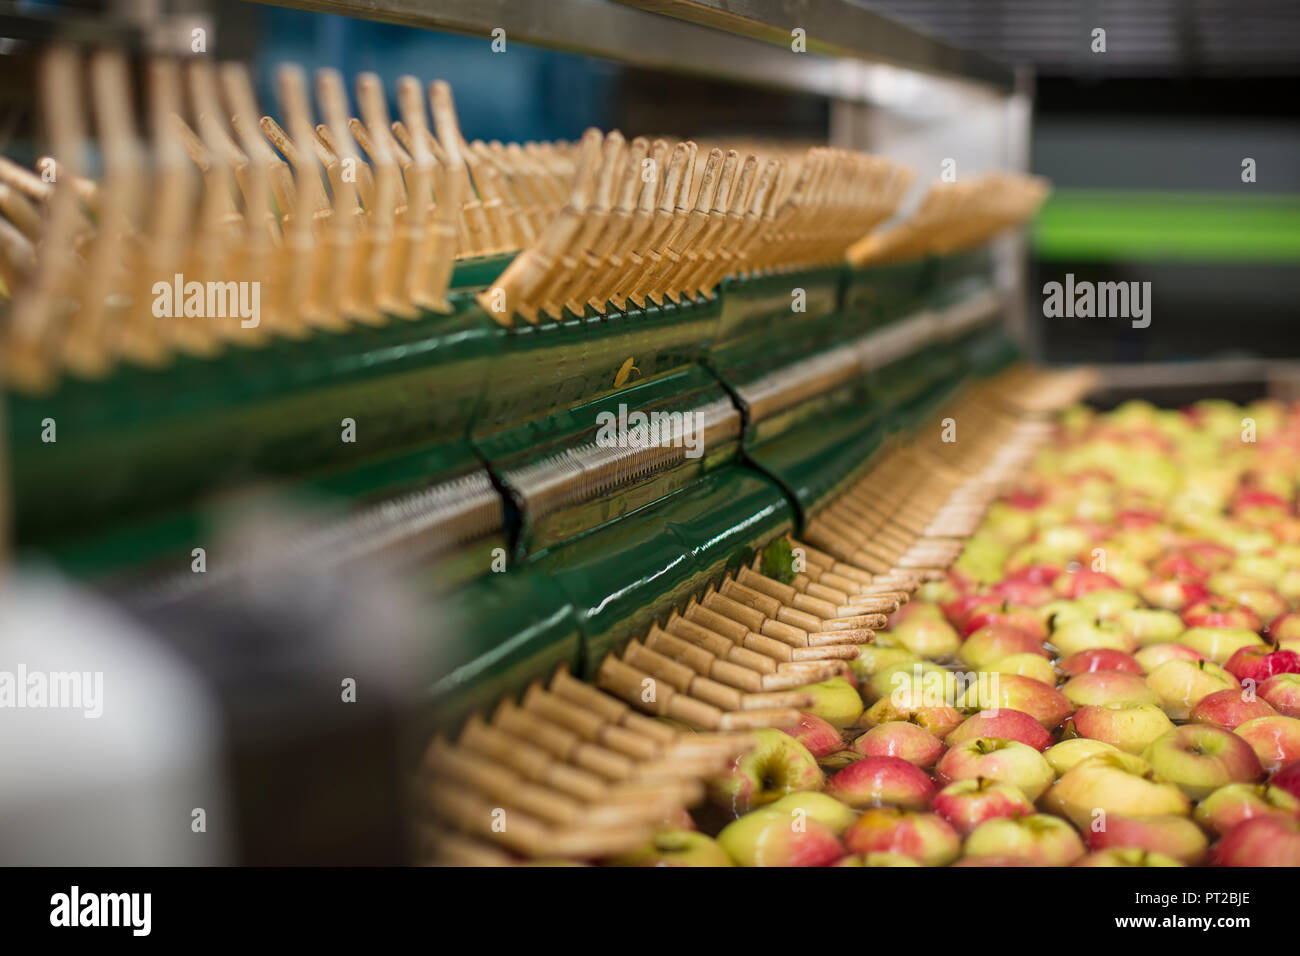 Apples being cleaned by machine - Stock Image